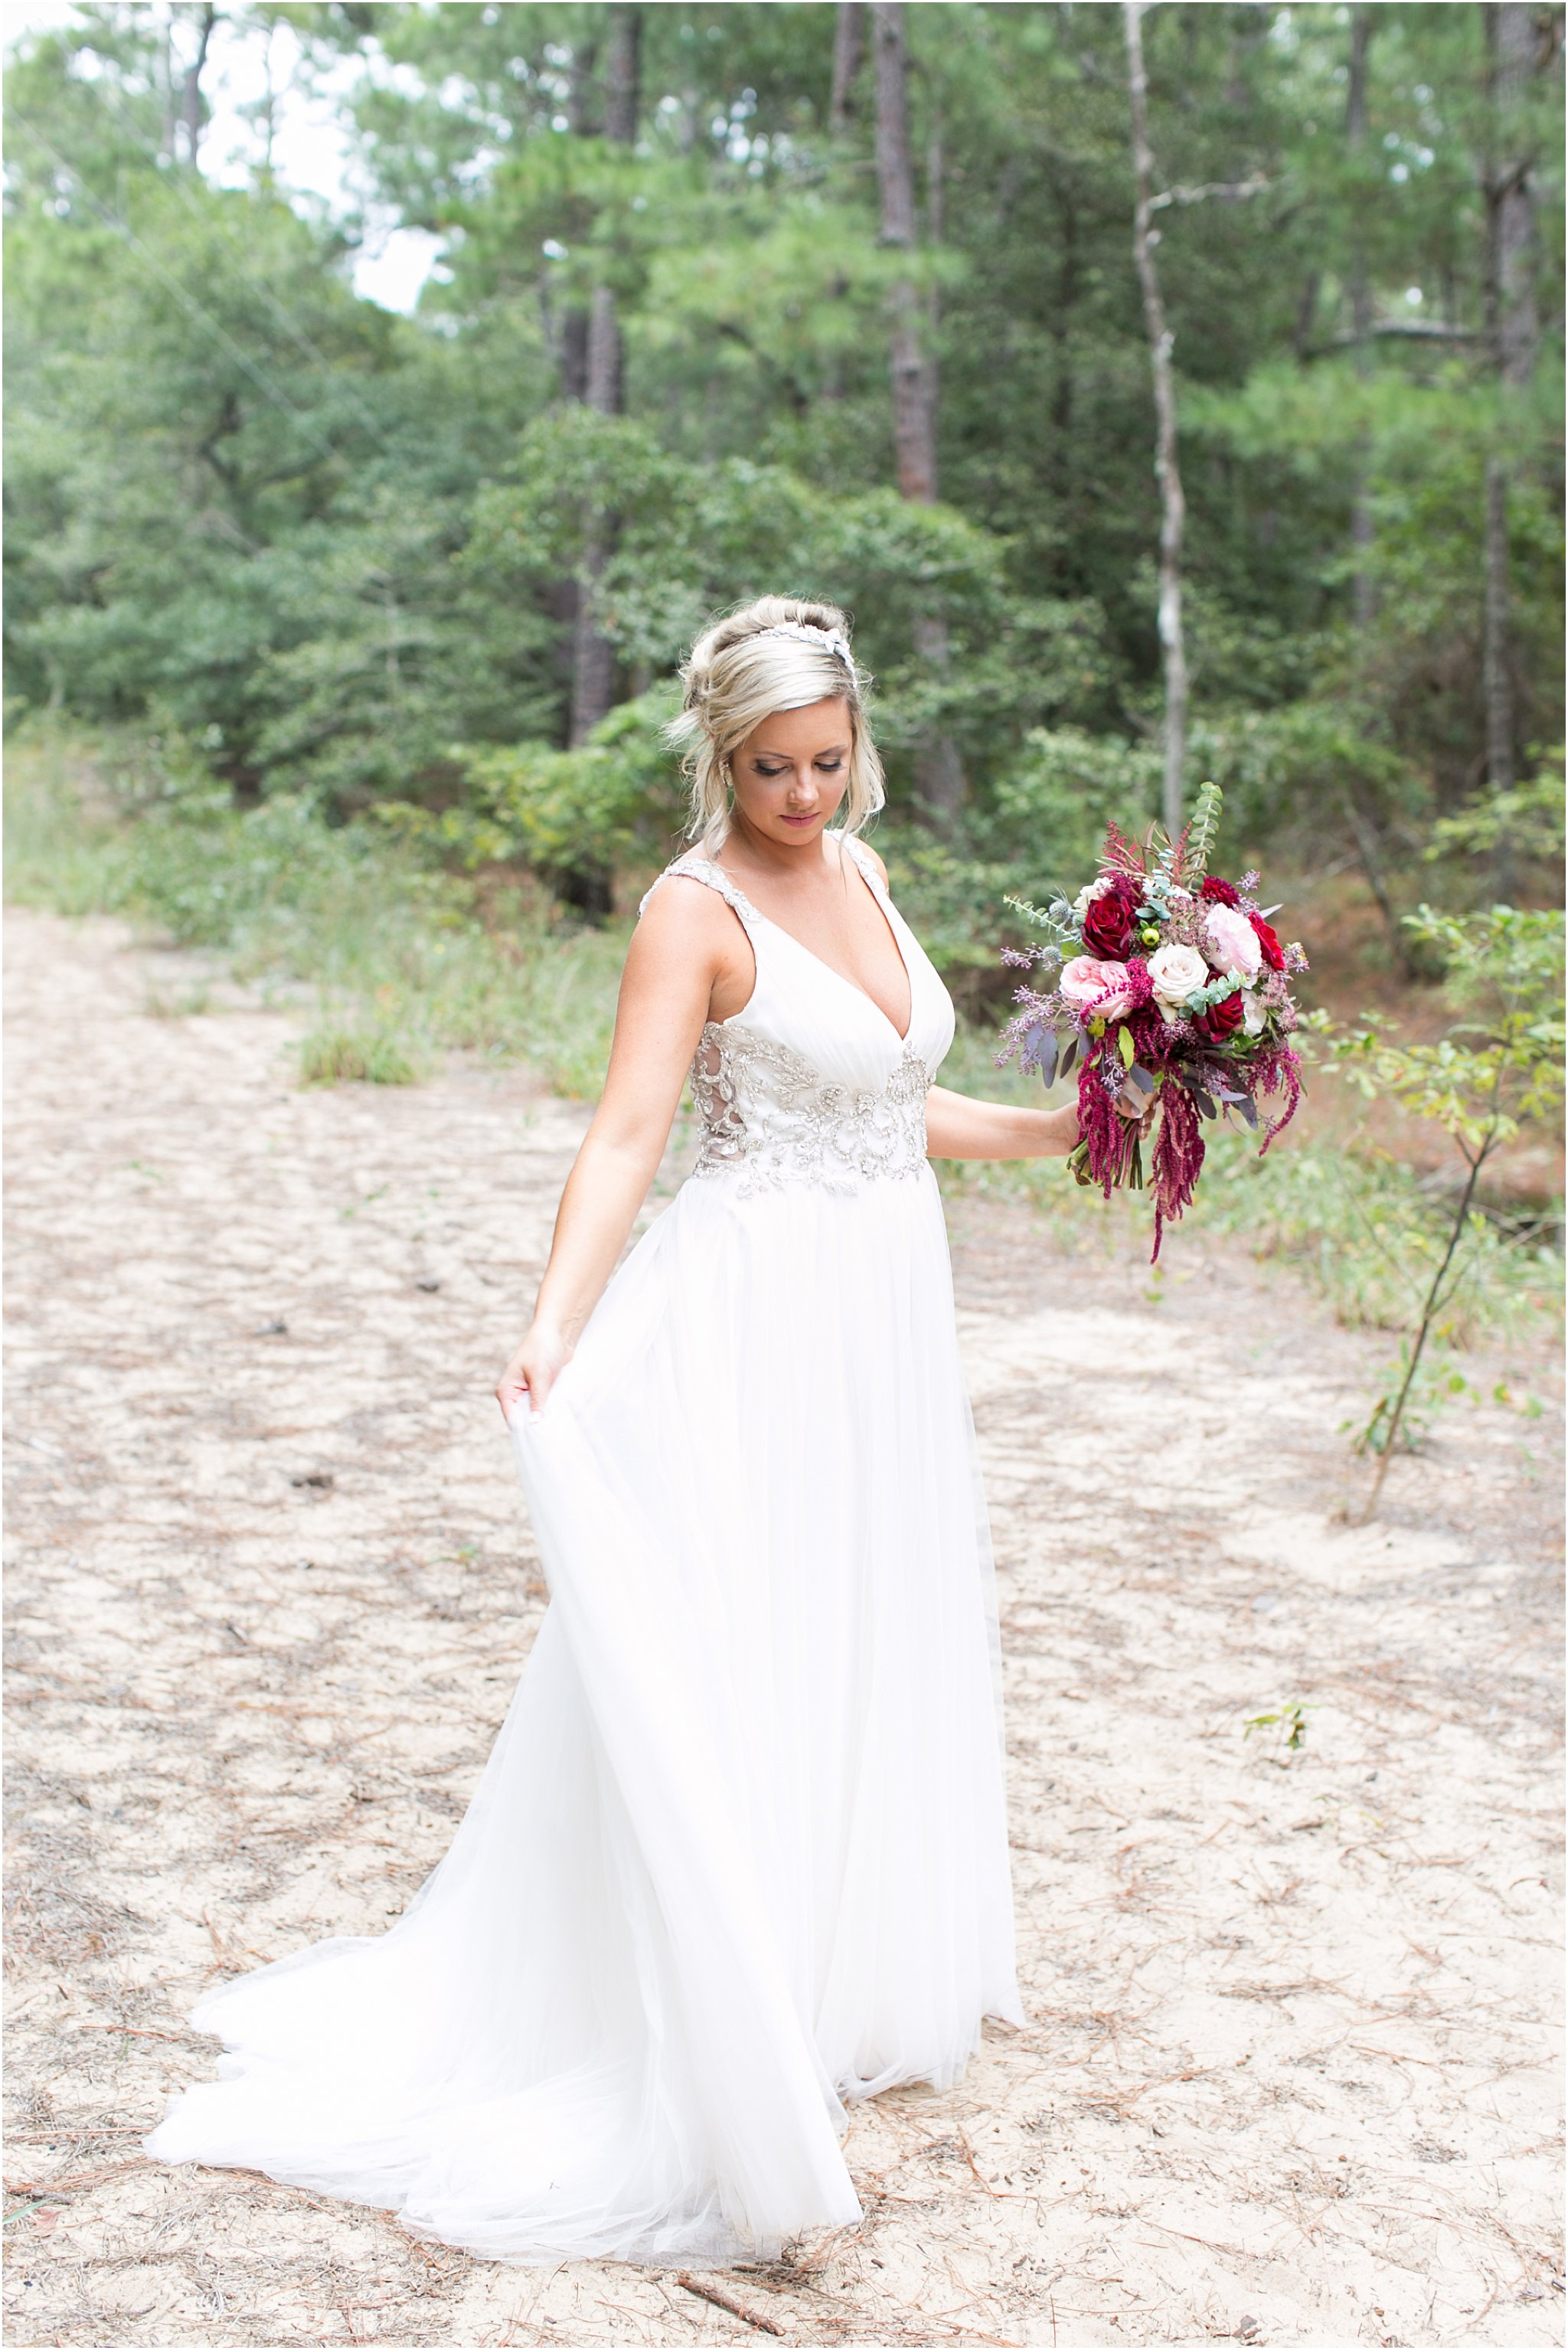 jessica_ryan_photography_virginia_wedding_photographer_candid_authentic_hampton_roads_wedding_photography_marina_shores_yacht_club_first_landing_state_park_woodland_theme_garden_3297